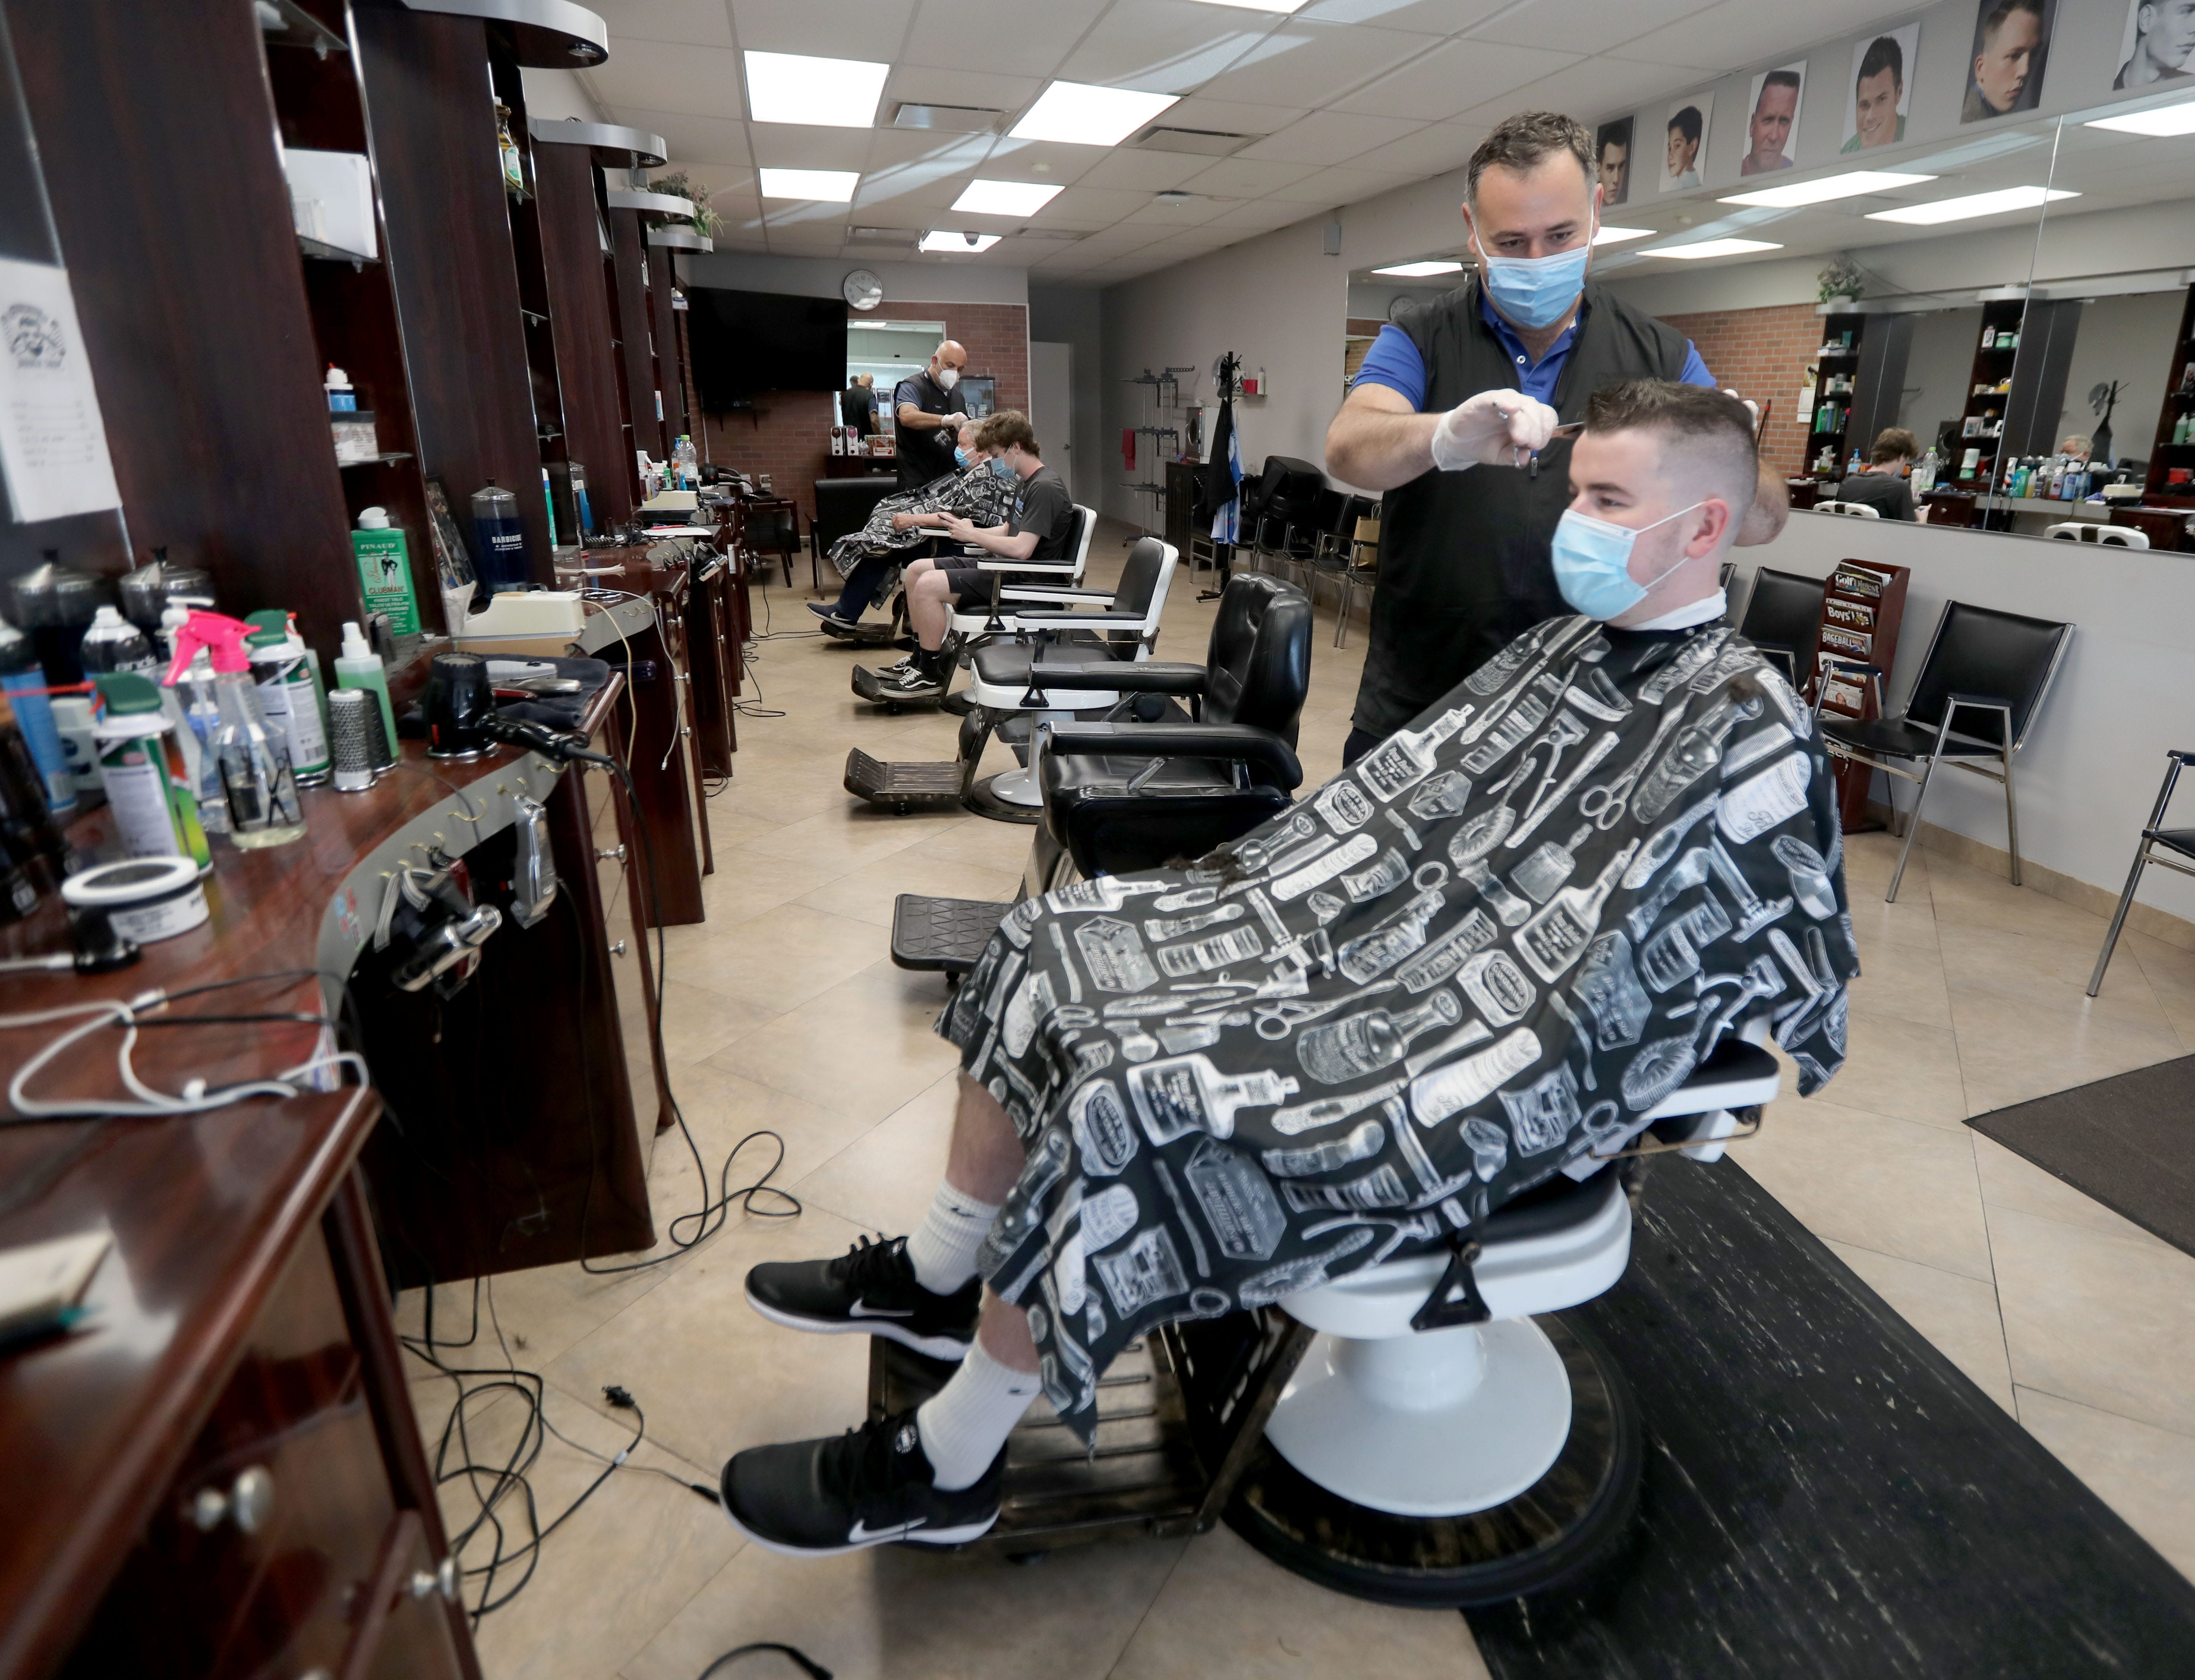 As part of a four-phase economic reopening plan, Gov. Andrew Cuomo gave the green light to launch Phase 2 in parts of the state in June, opening retail stores, hair salons and barber shops like Alex Gavrielov's, seen here cutting 21-year-old Sean Crowley's hair days after reopening in Briarcliff Manor in June.